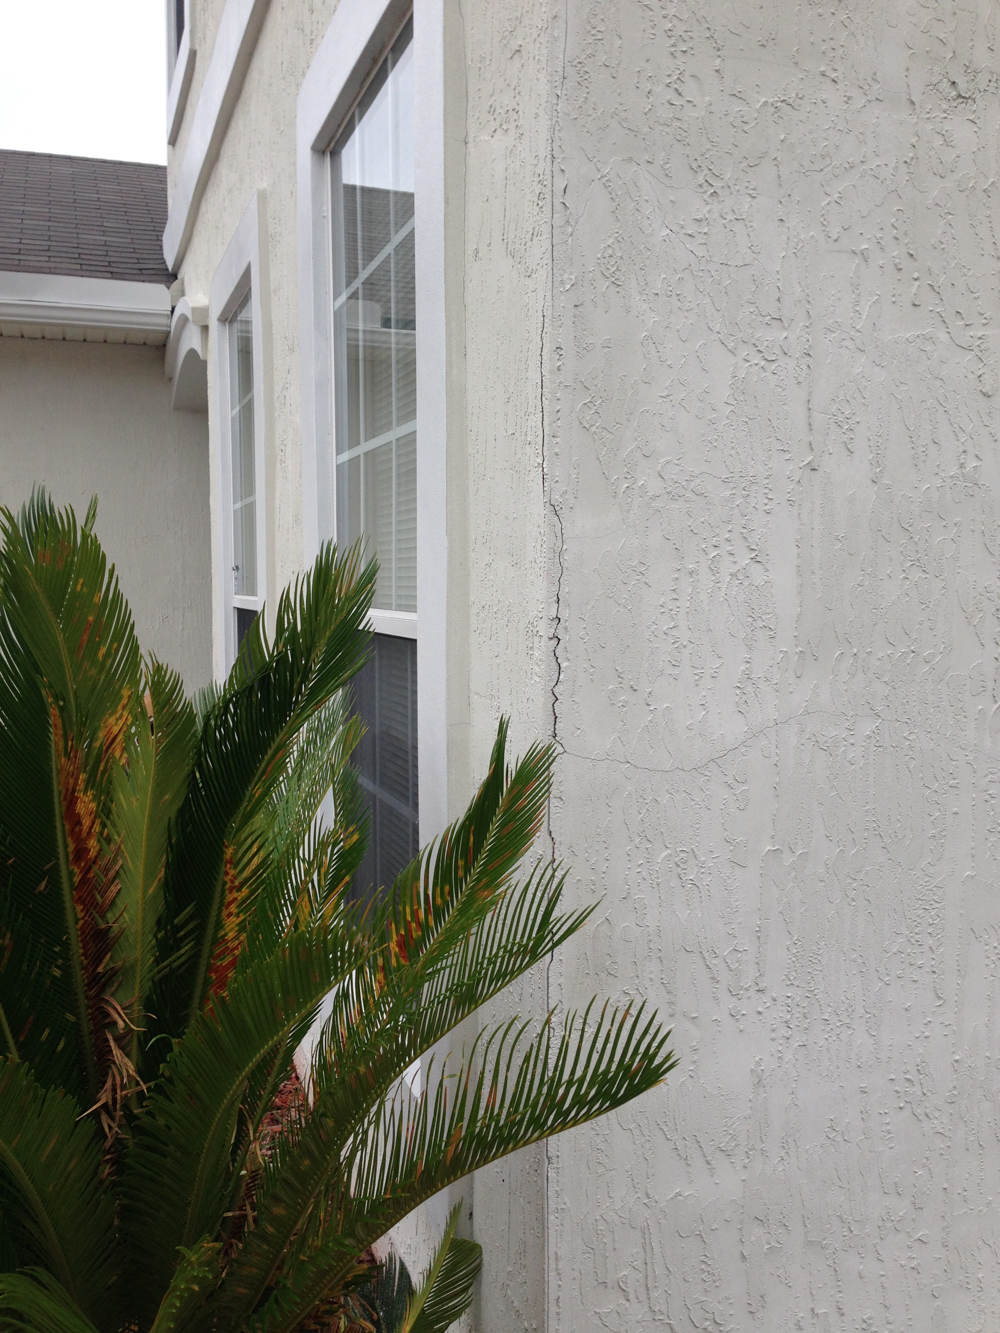 crack in stucco